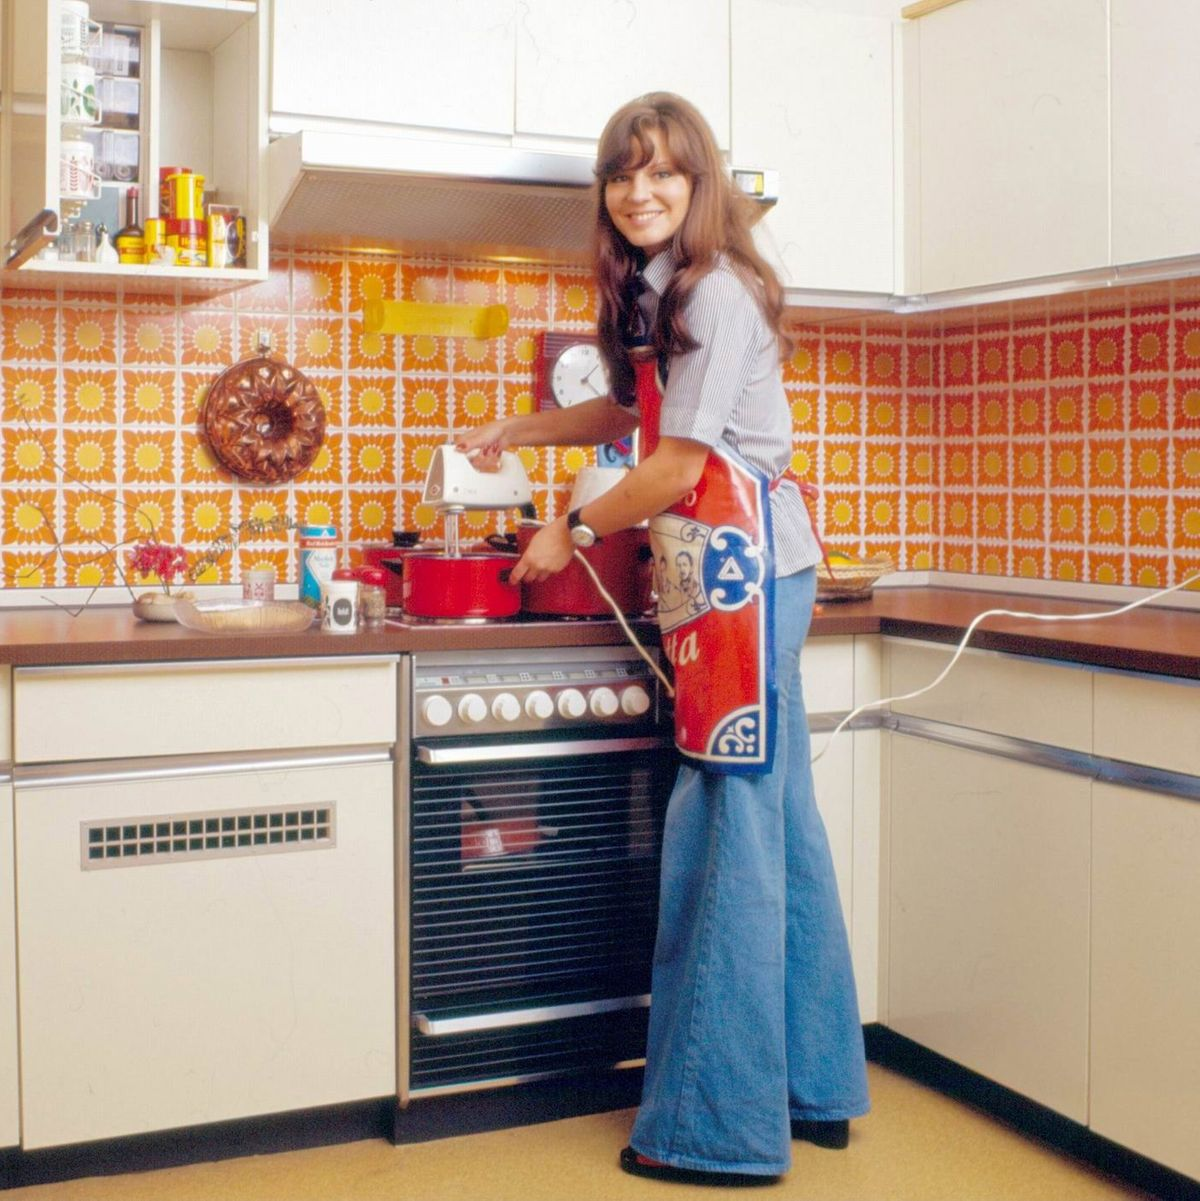 43 Best Gifts For Home Cooks 2020 The Strategist New York Magazine